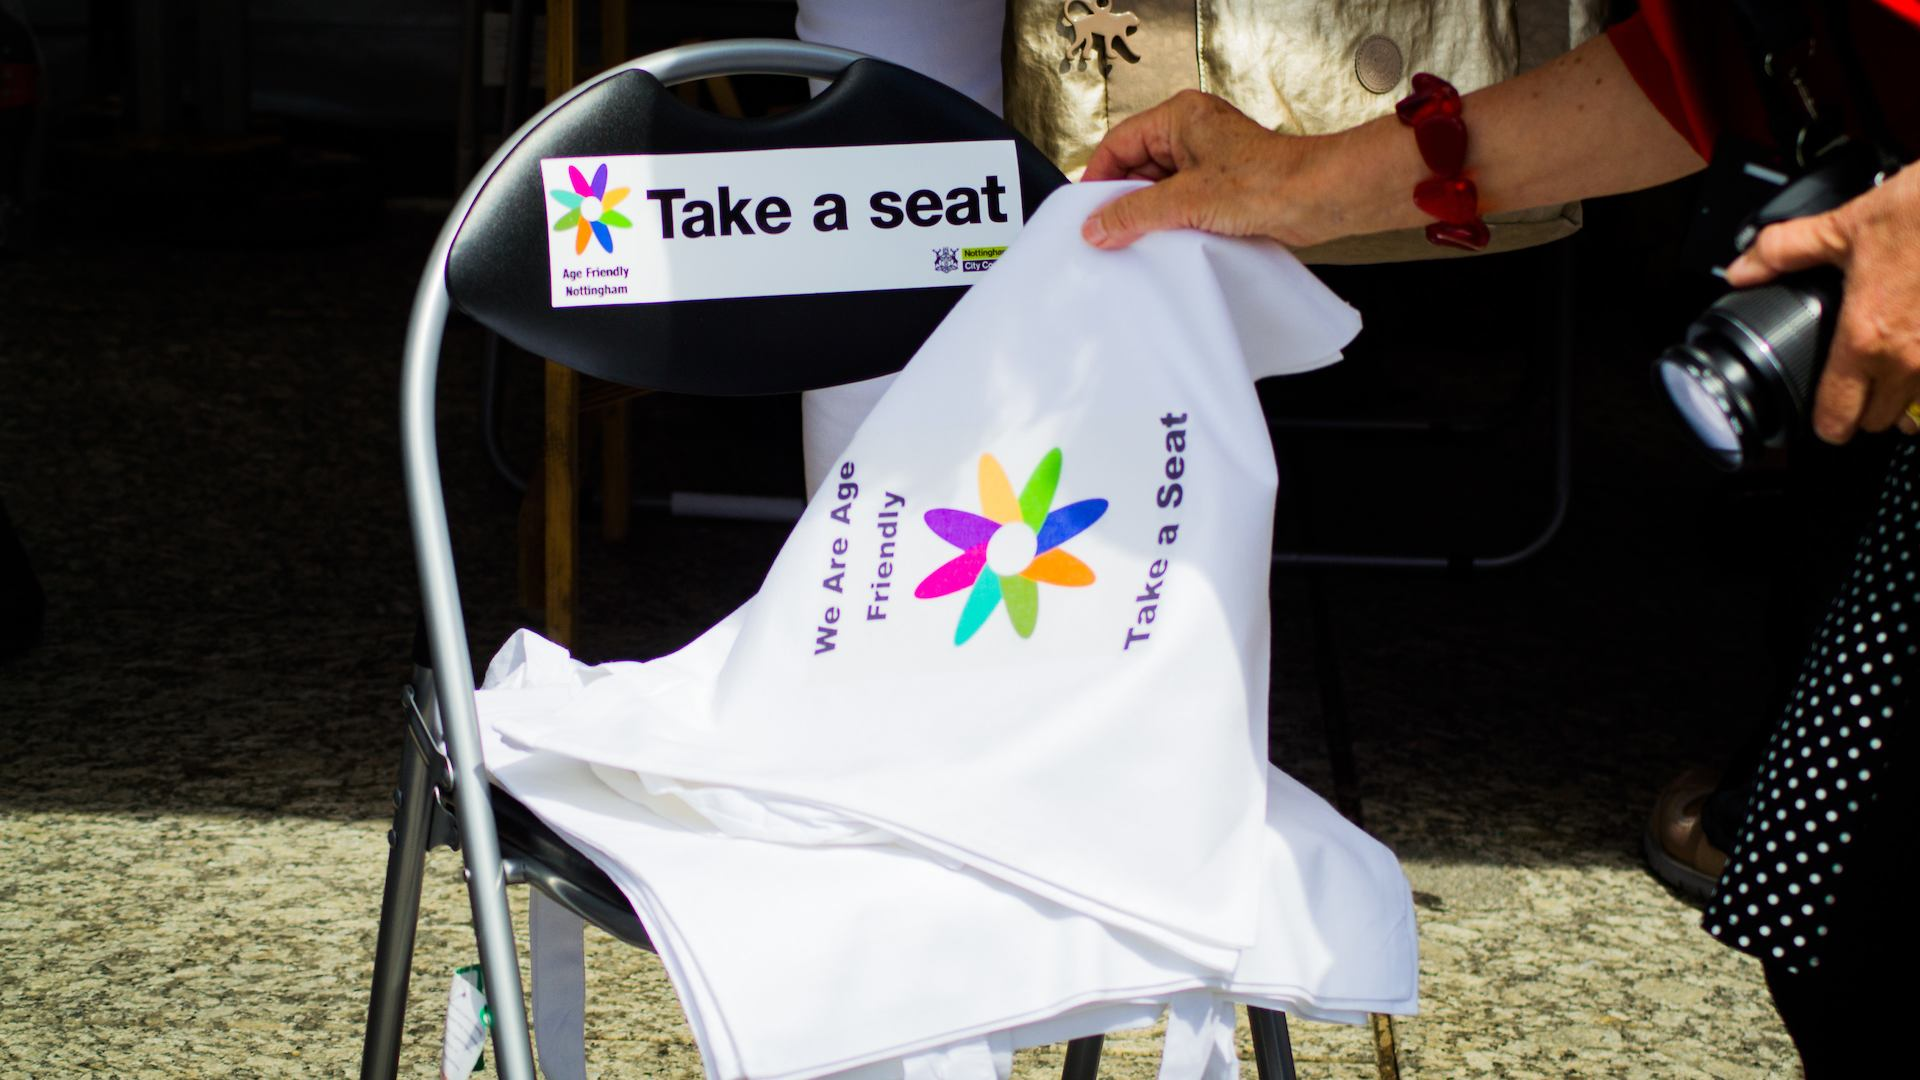 Chair with Take a seat campaign sticker and Take a seat campaign tote bags.